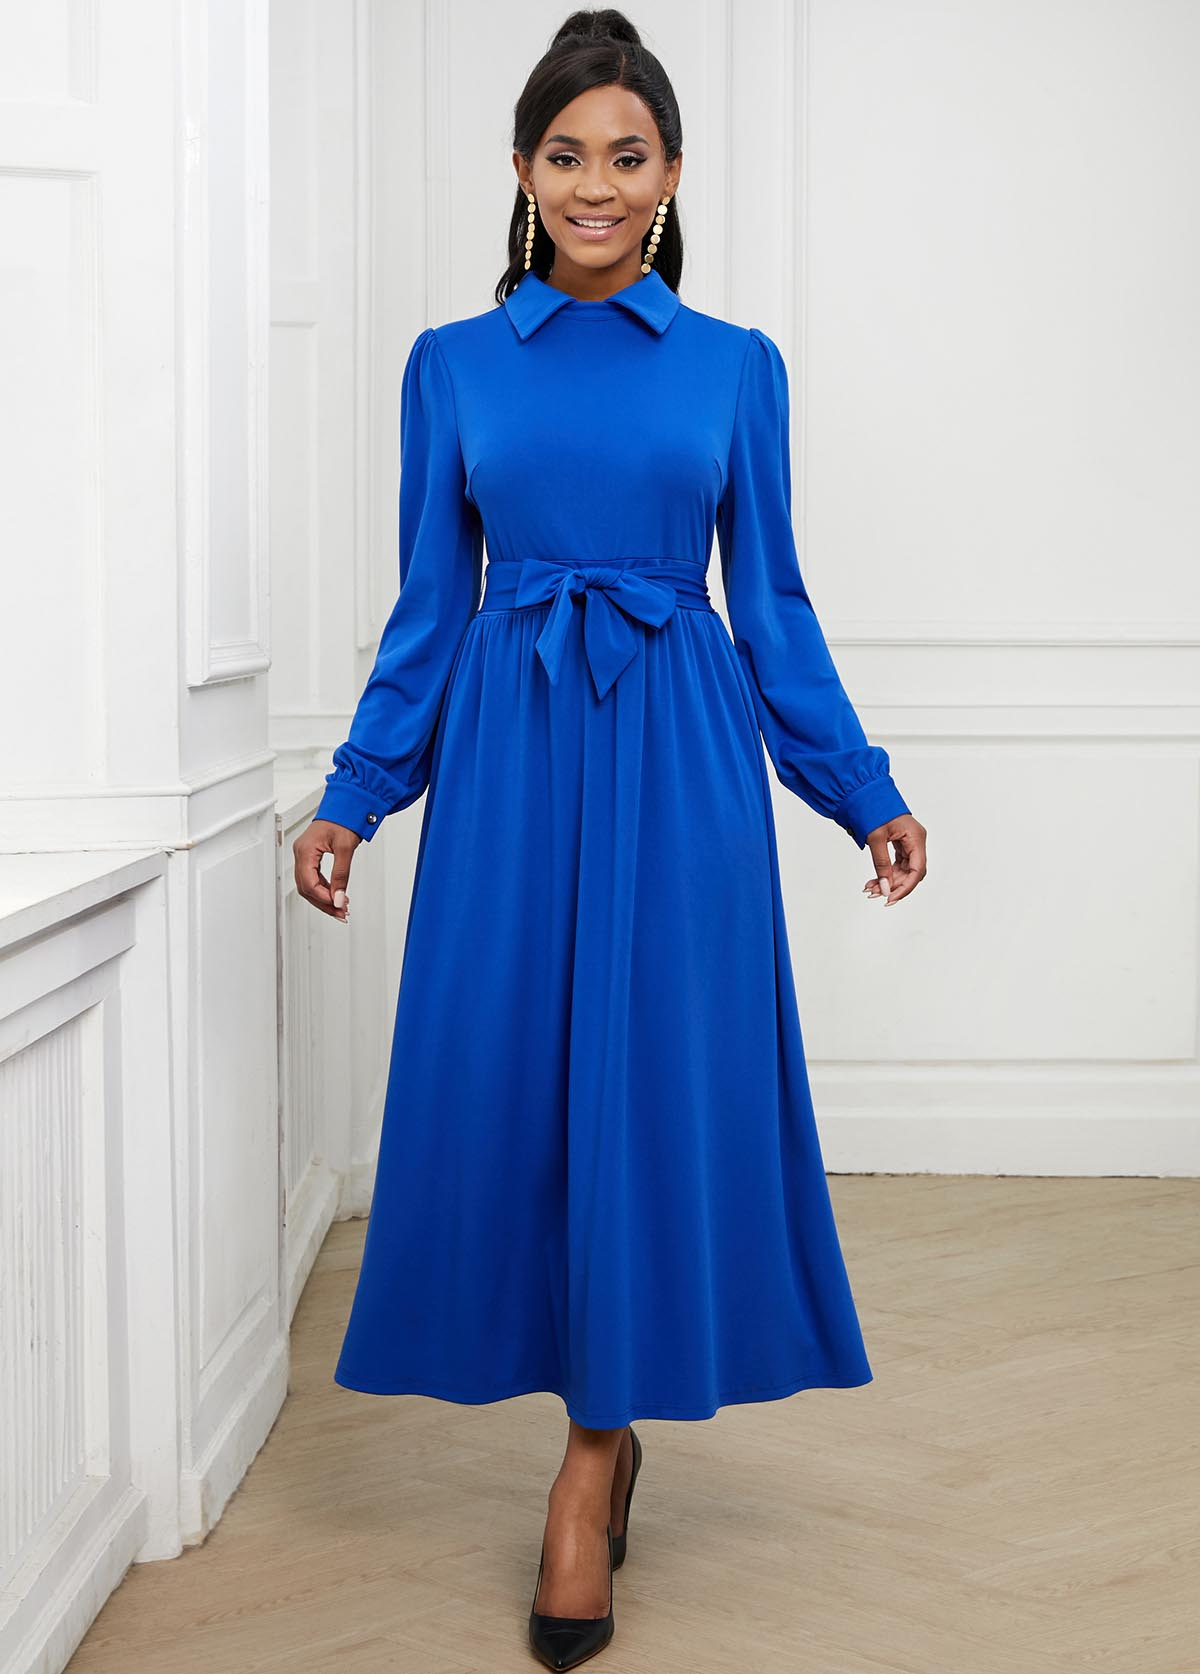 Bowknot Sash Long Sleeve Turndown Collar Swing Dress